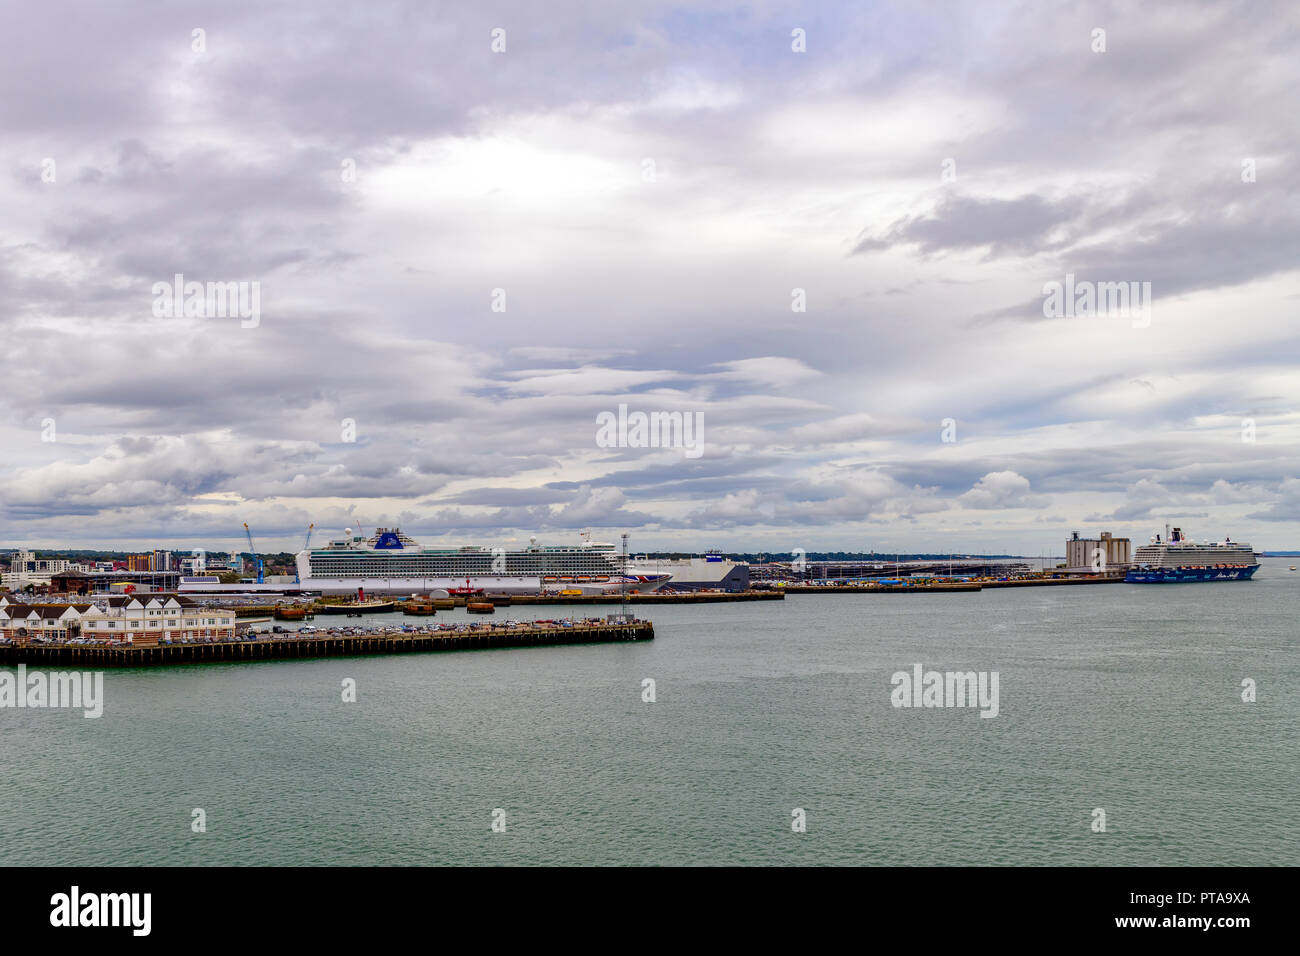 View of Southampton water showing the Carnival / P & O Azura and the TUI / Thomson Mein Schiff 4 moored at the docks - Stock Image